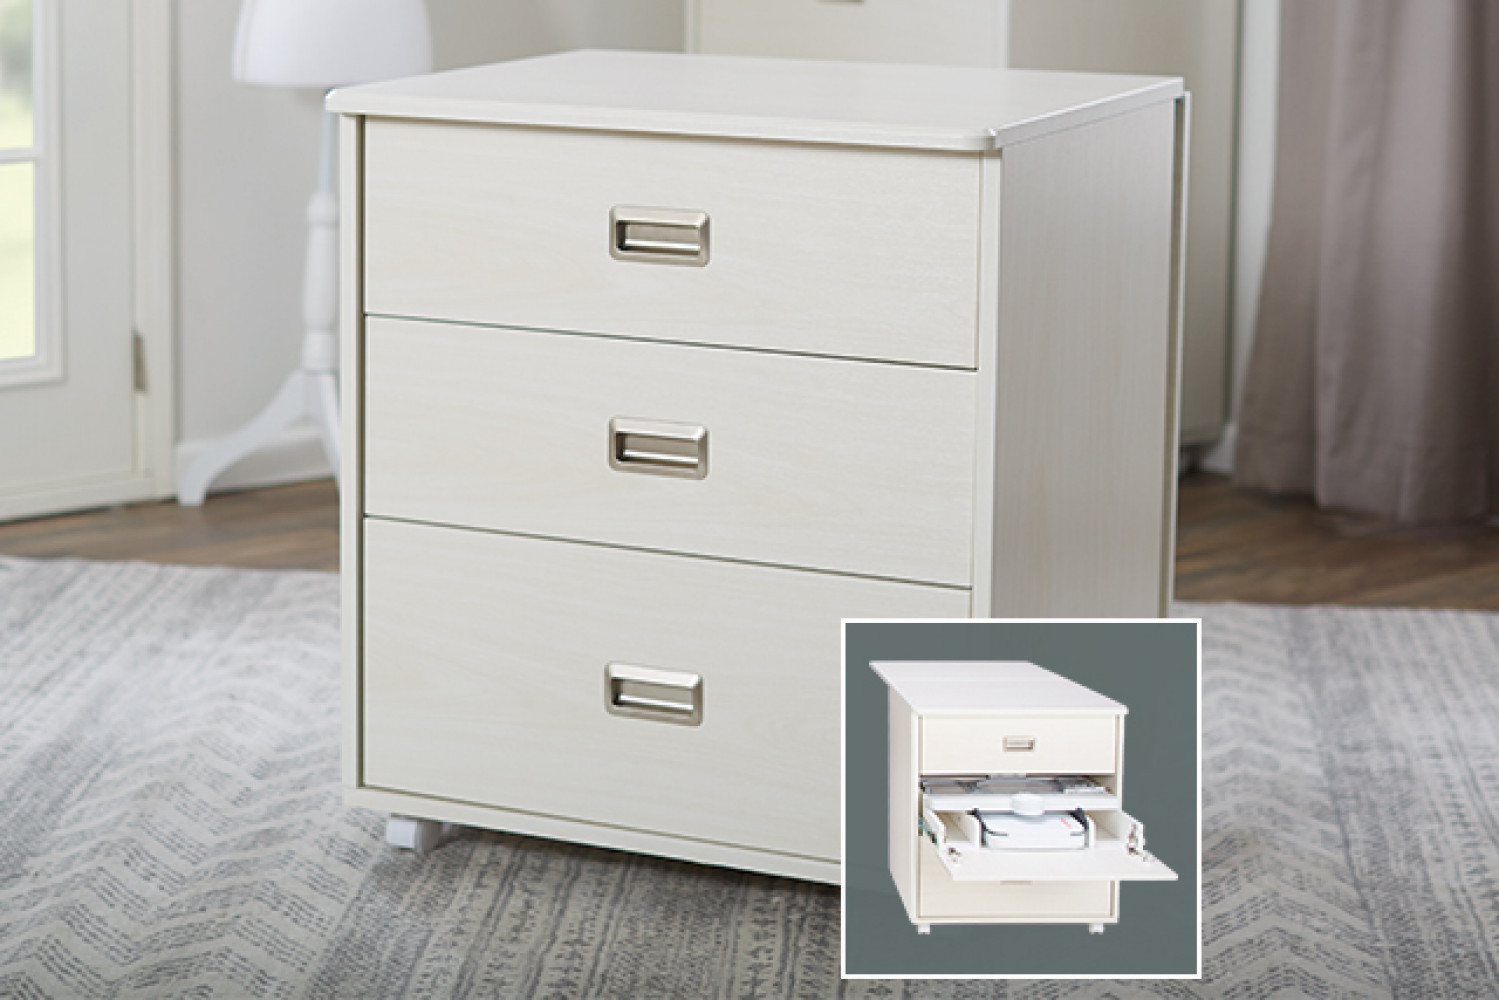 Koala Cabinets Bernina Caddy